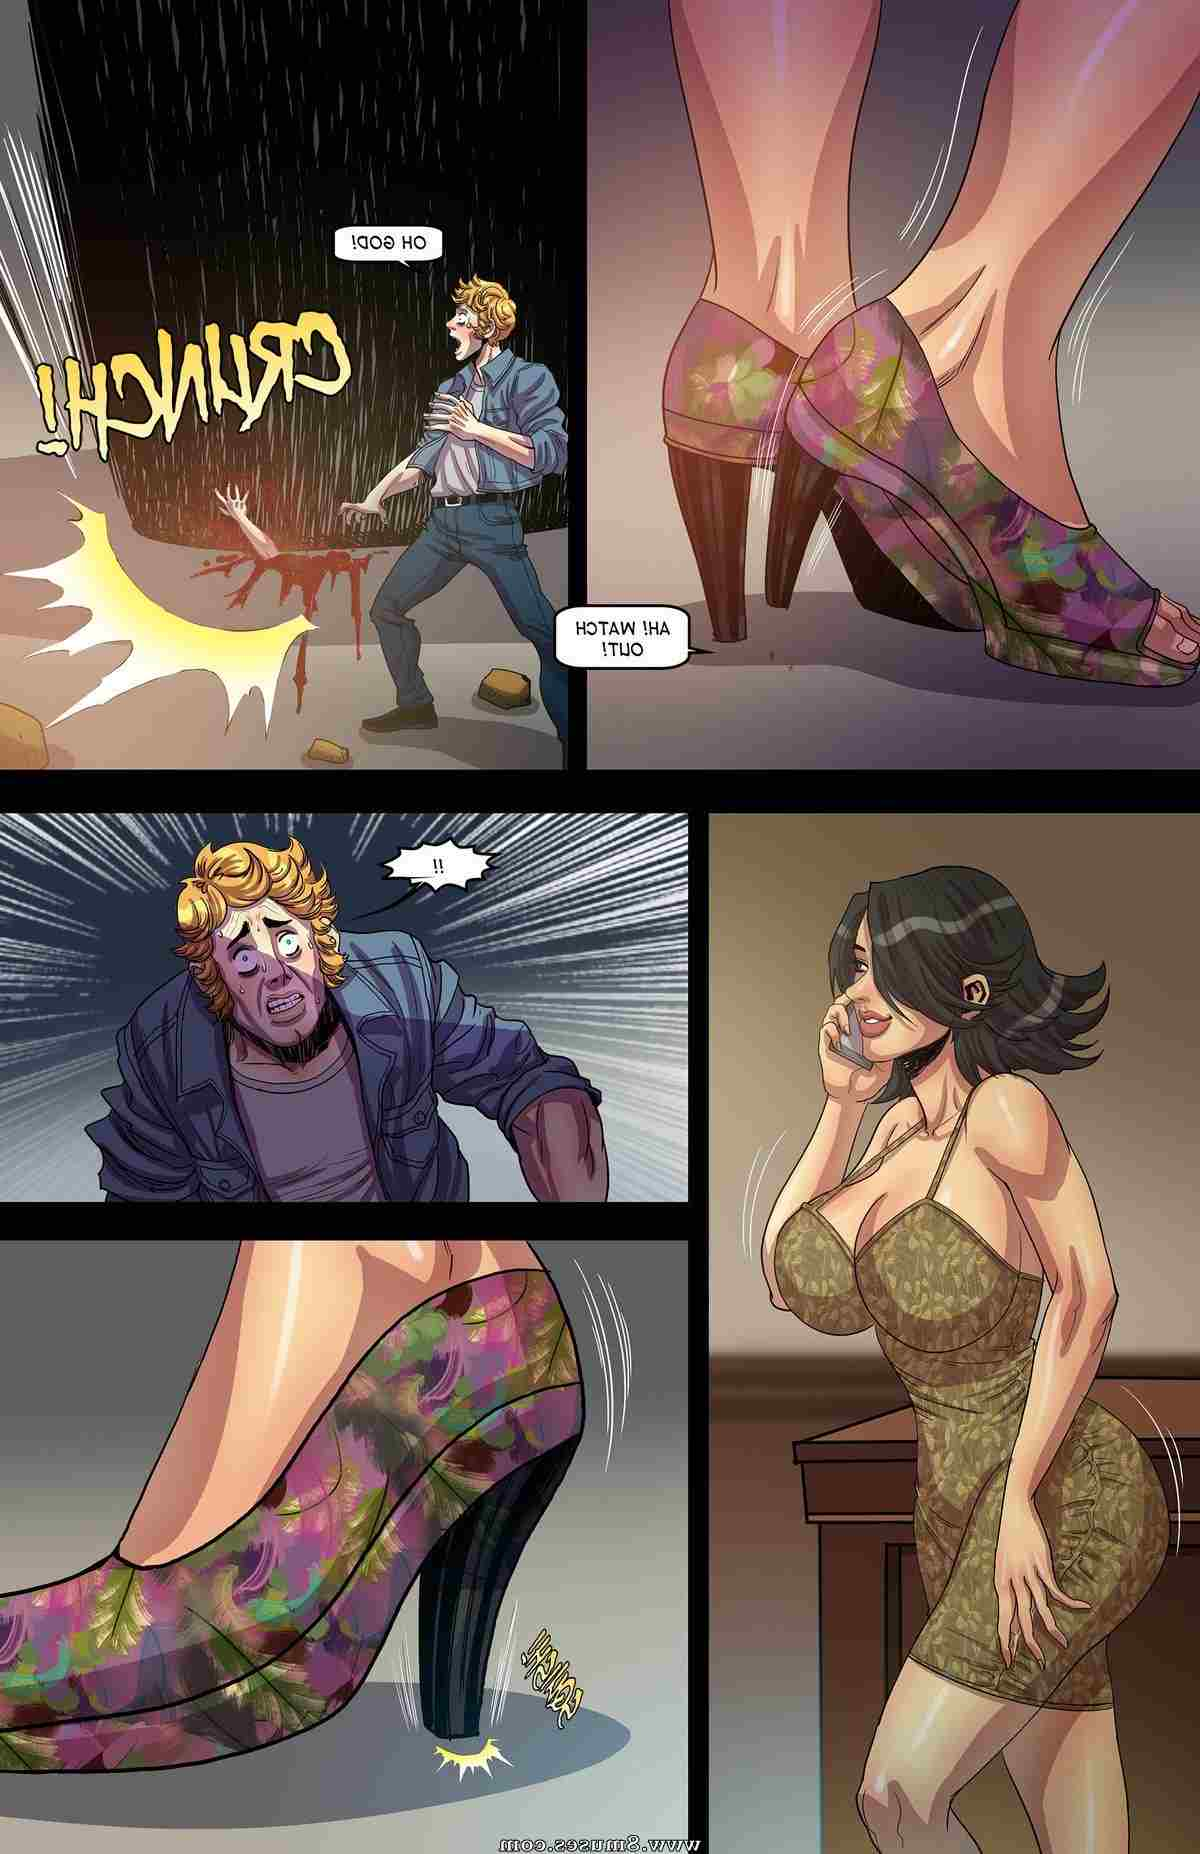 Giantess-Fan-Comics/The-Necklace The_Necklace__8muses_-_Sex_and_Porn_Comics_7.jpg